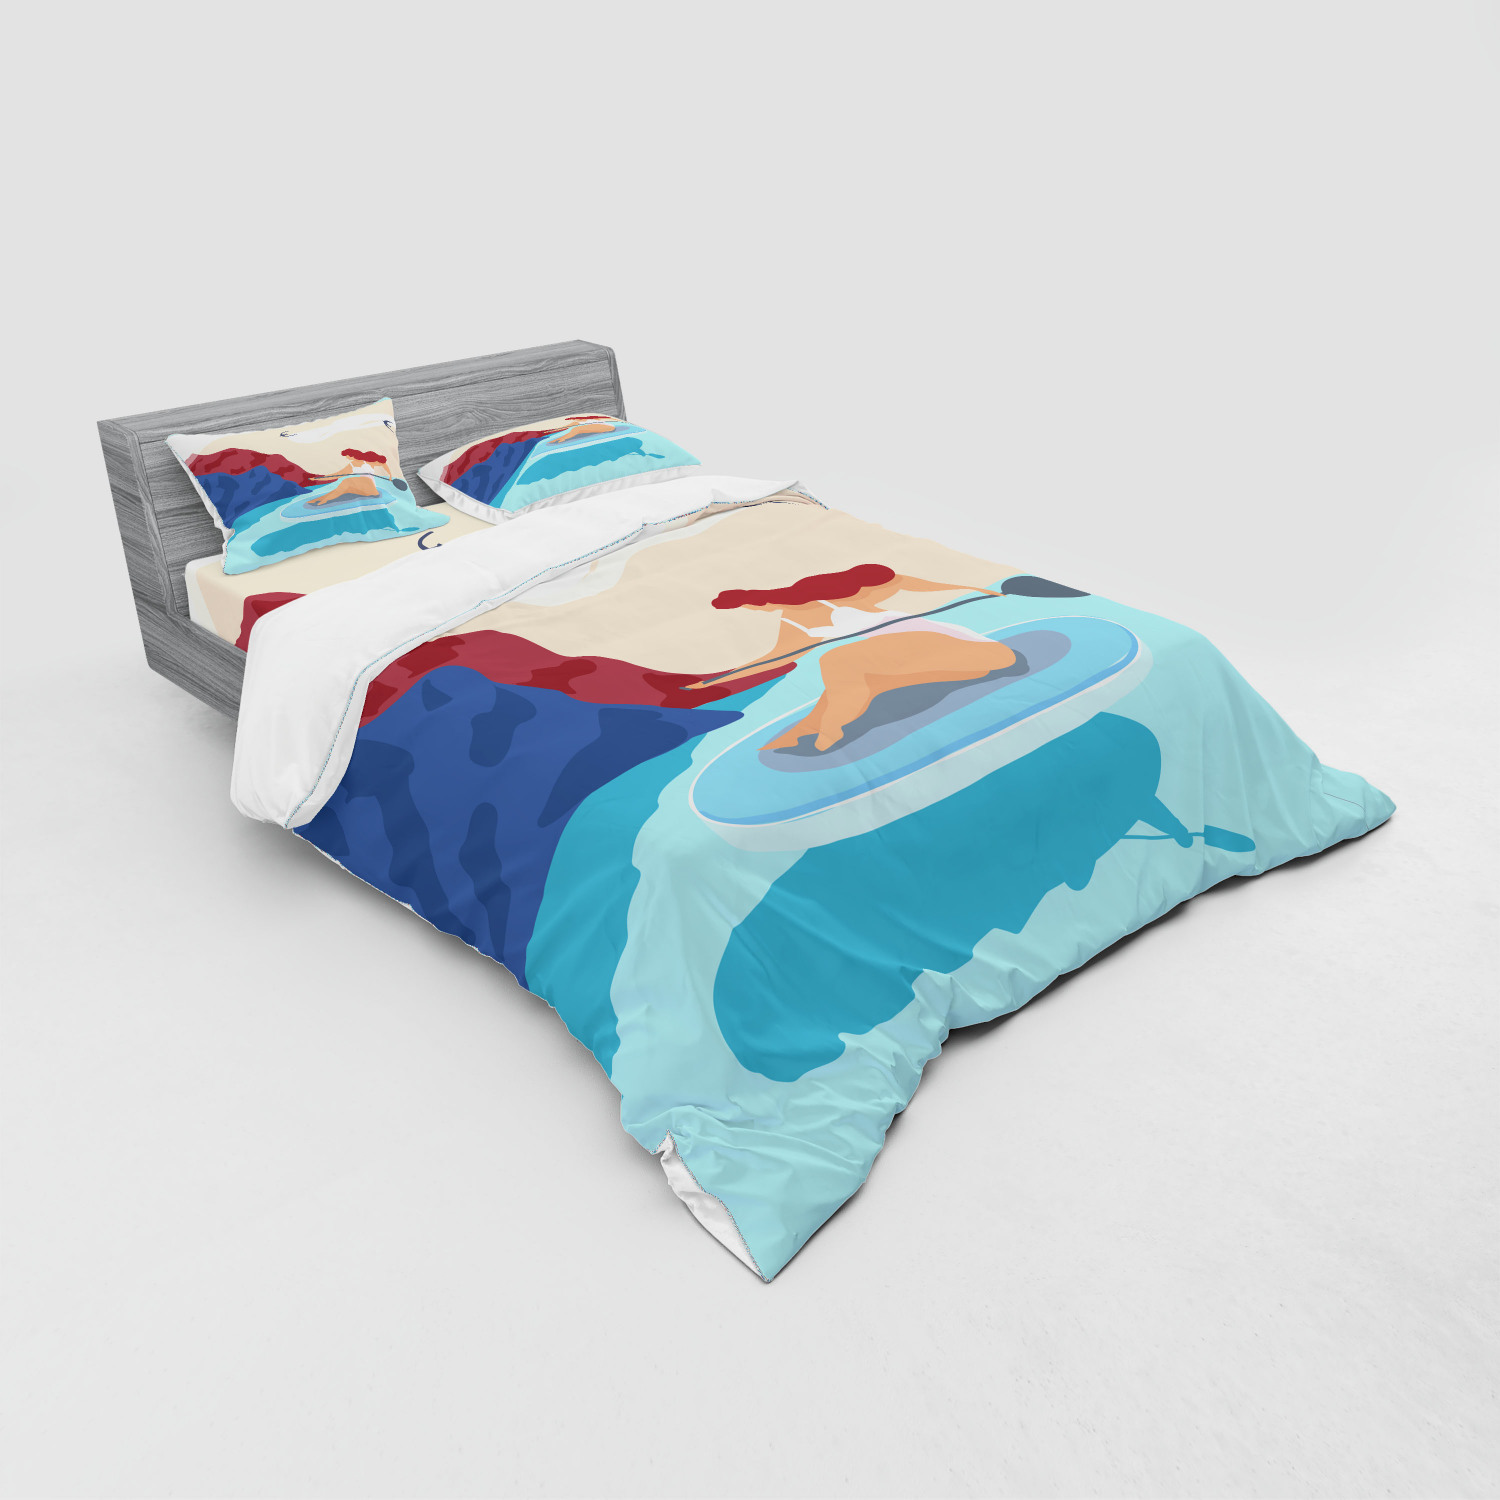 thumbnail 95 - Ambesonne Summer Bedding Set Duvet Cover Sham Fitted Sheet in 3 Sizes